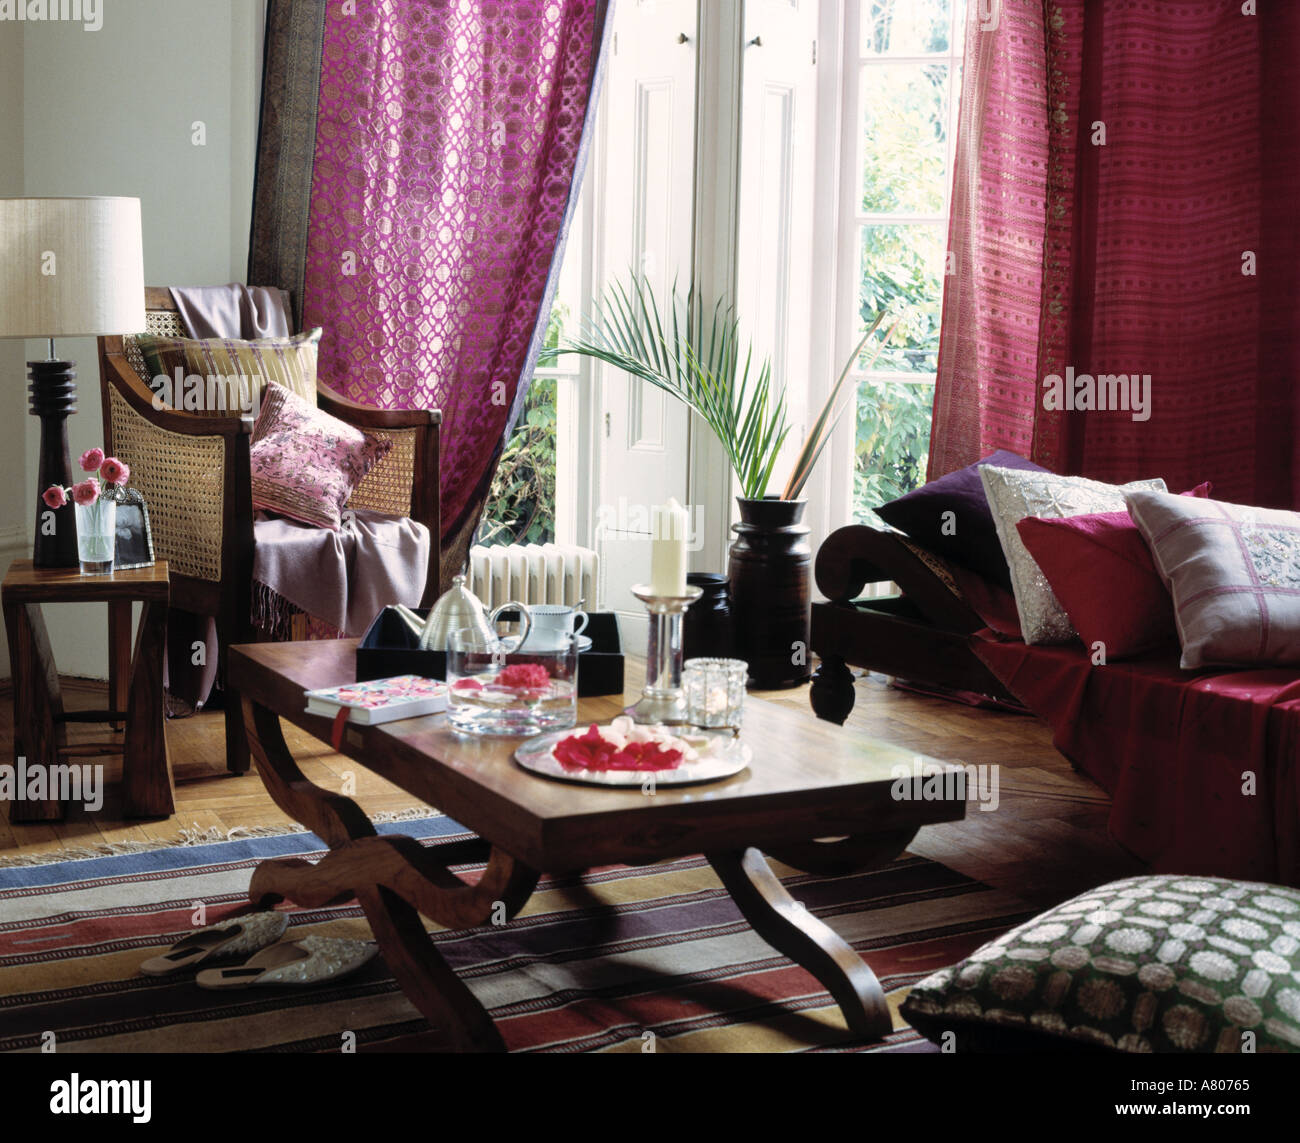 Lila Gardinen Mauve Curtains Stockfotos Mauve Curtains Bilder Alamy